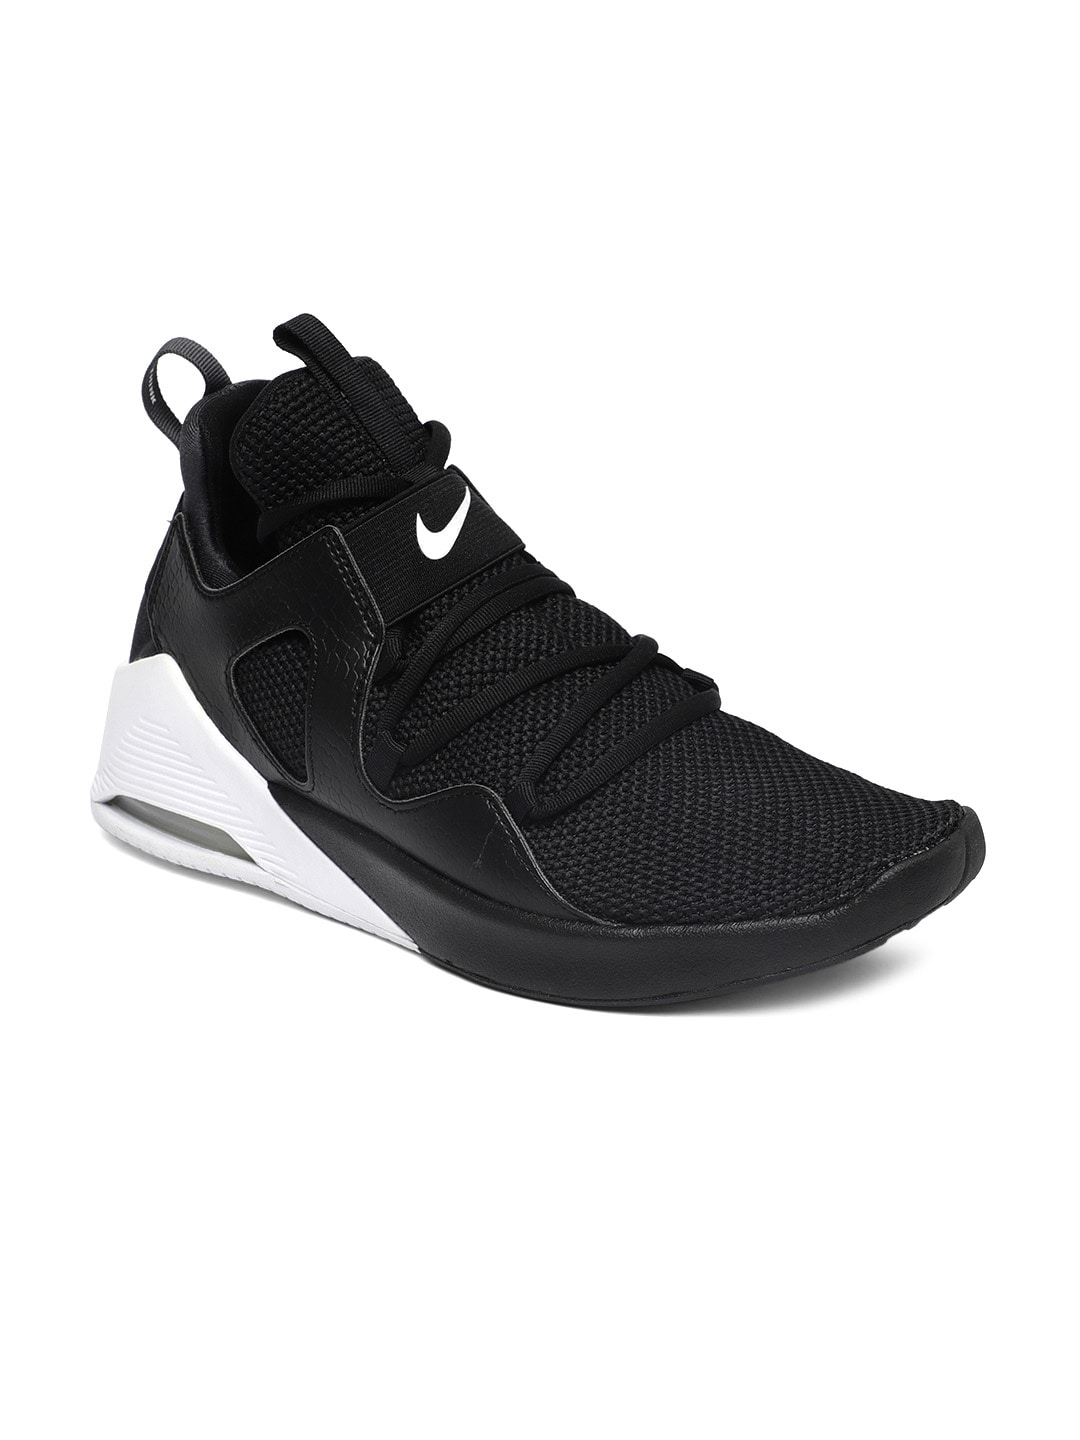 753964e2ac78e Nike Training Shoes - Buy Nike Training Shoes For Men   Women in India